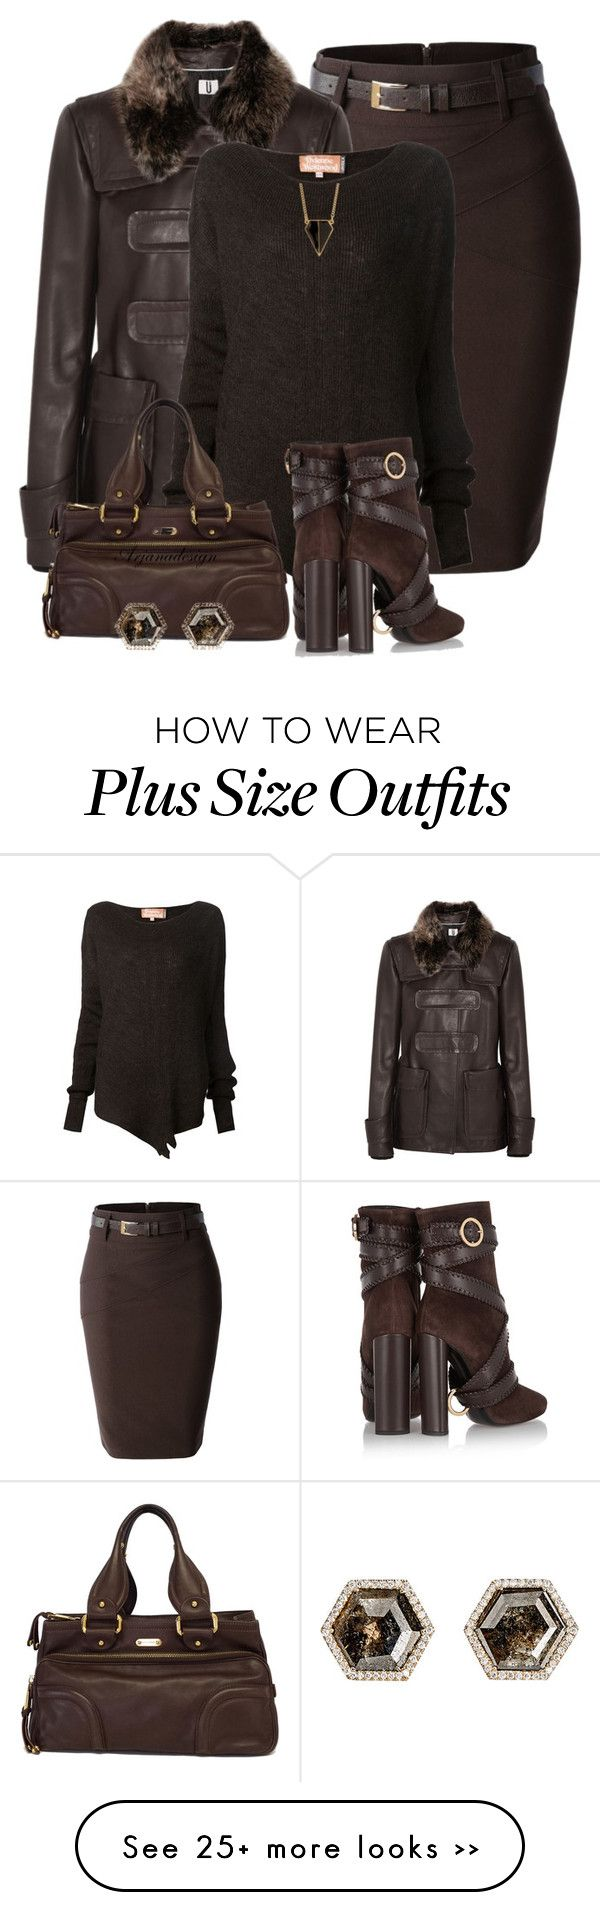 """CHOCOLATE BROWN FOR FALL"" by arjanadesign on Polyvore featuring LE3NO, Topshop Unique, Vivienne Westwood, Tom Ford, Marc Jacobs, Monique Péan, Rebecca Minkoff, WorkWear and fall2015"